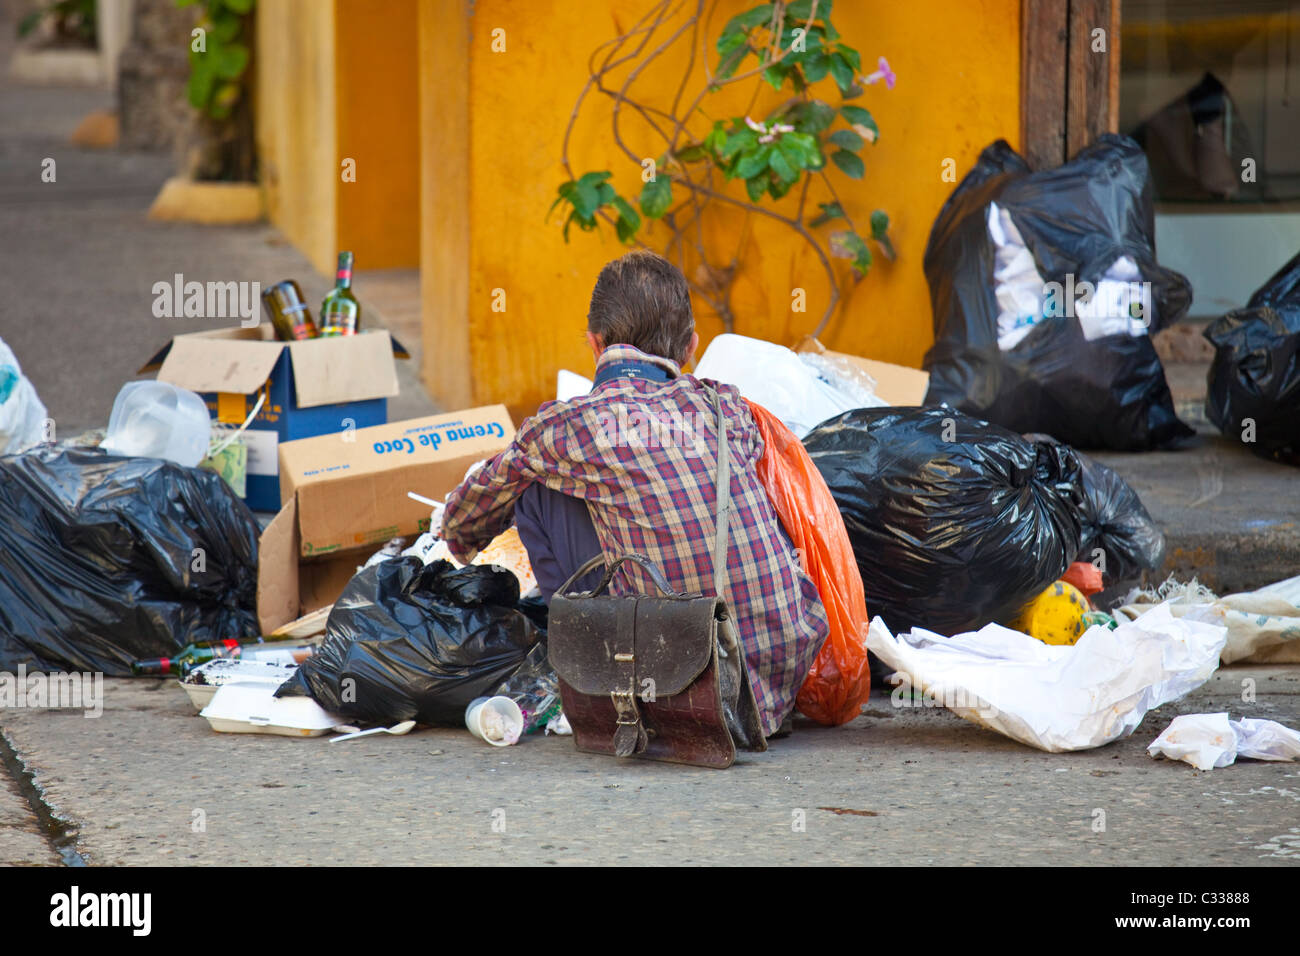 Scavenging through the garbage on the streets of the old town, Cartagena, Colombia - Stock Image